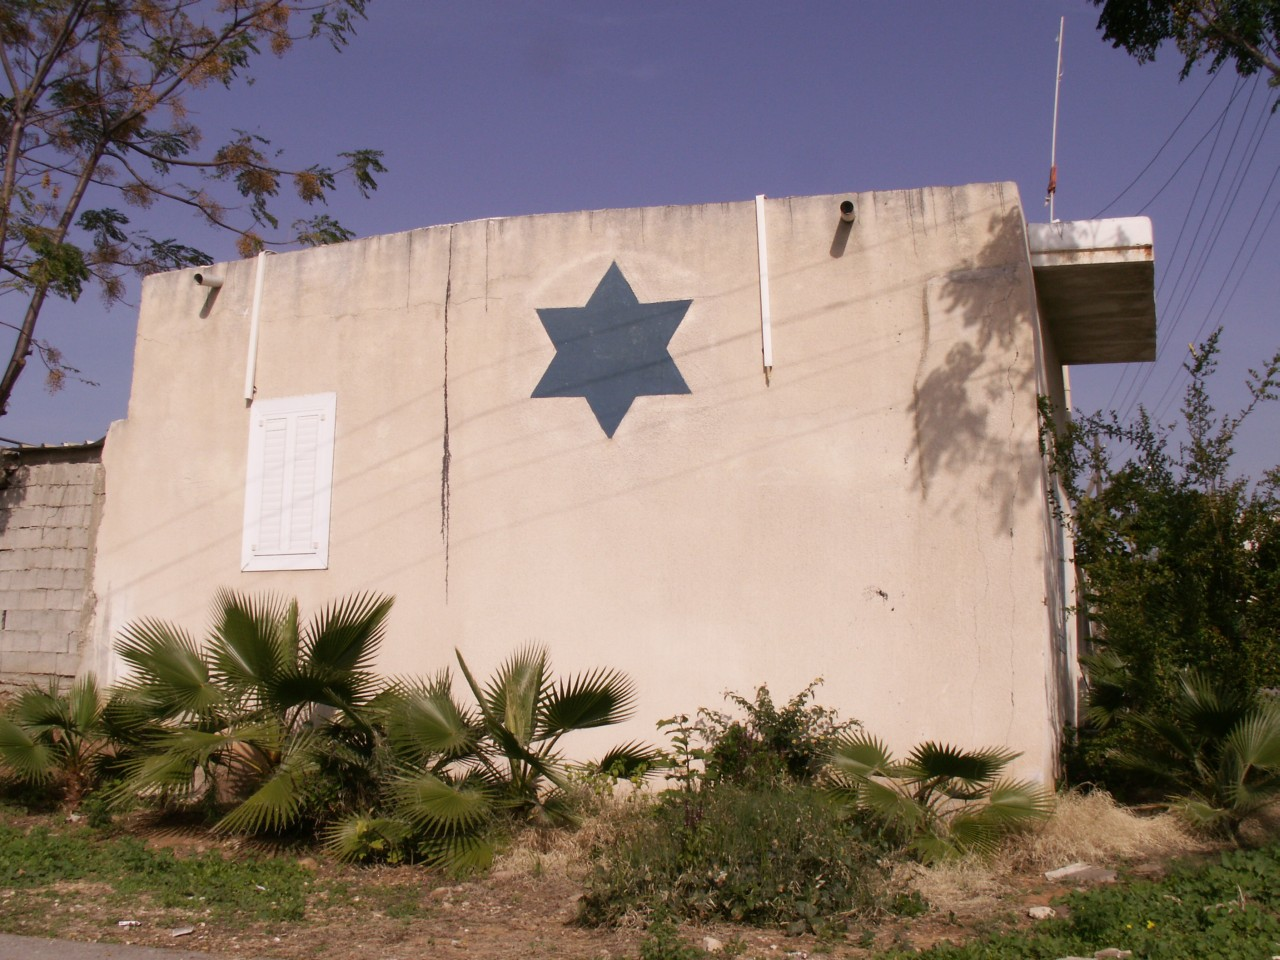 al-Shaykh Muwannis - الشيخ موّنس : This house is used as a synagogue by Iraqi Jews.